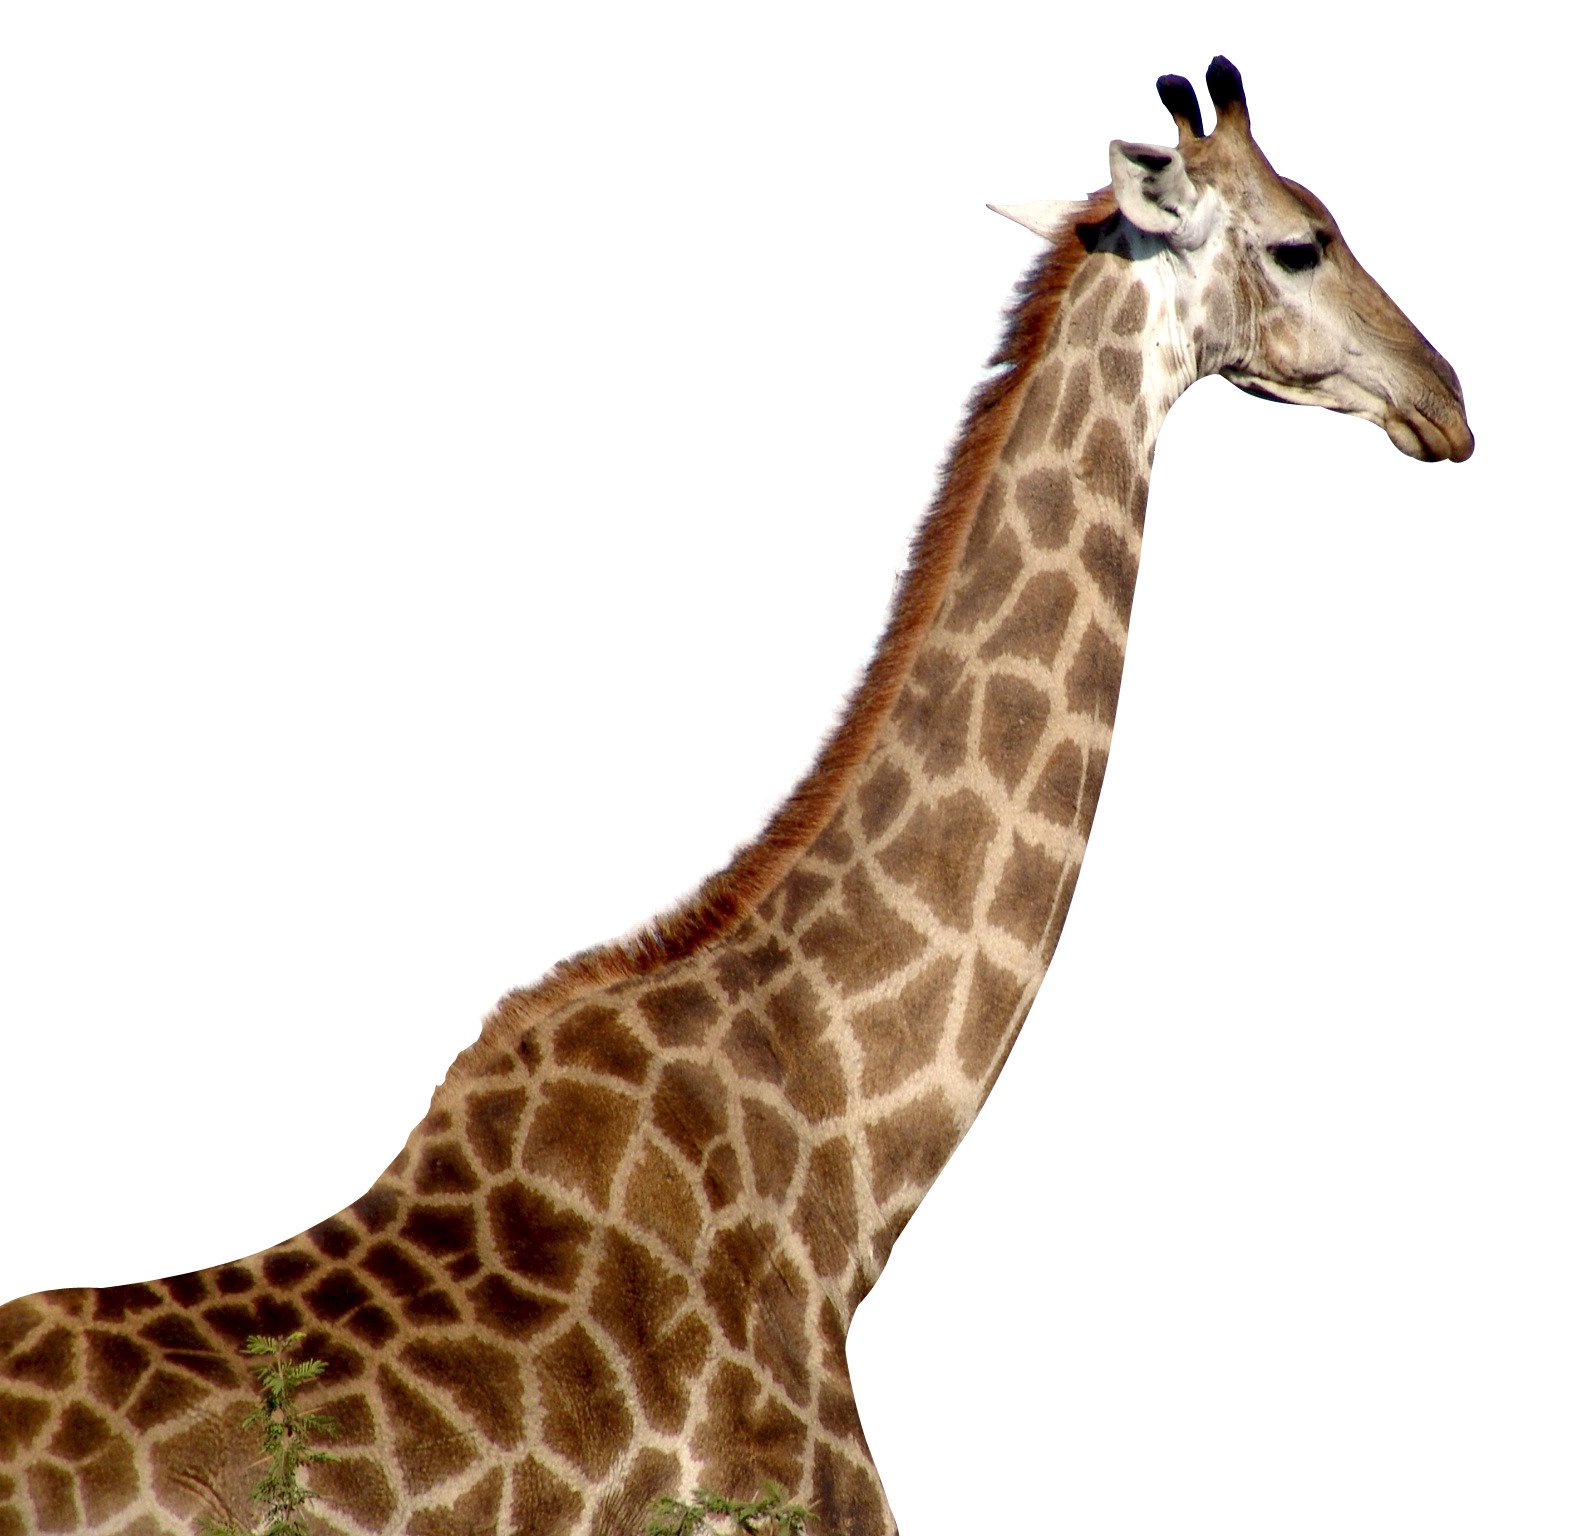 Giraffe head png. Transparent images all download